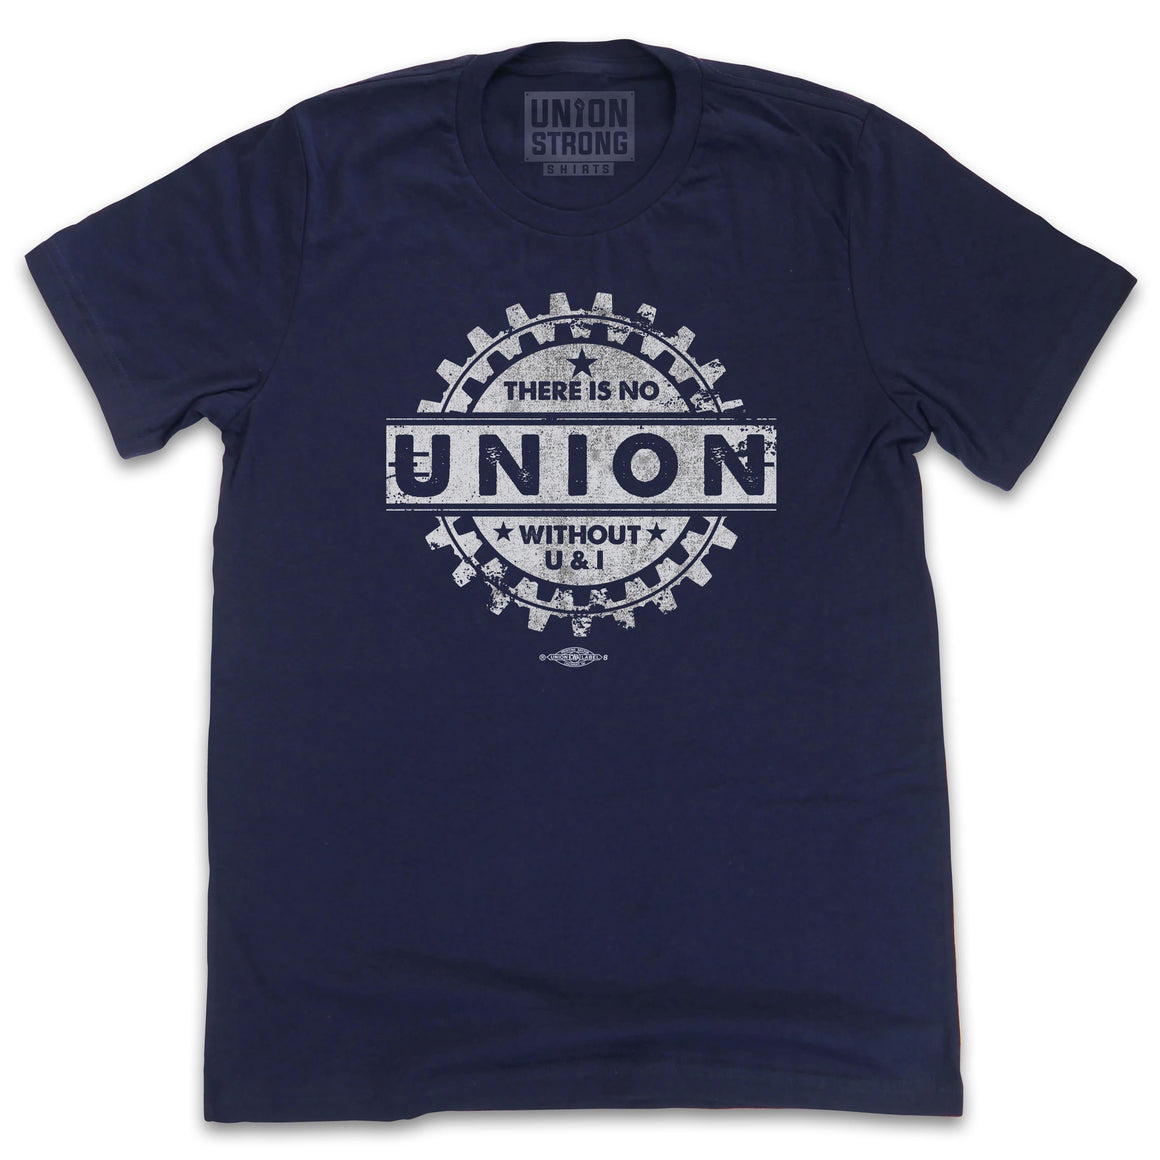 There Is No Union Without U & I Shirts unionstrongshirts